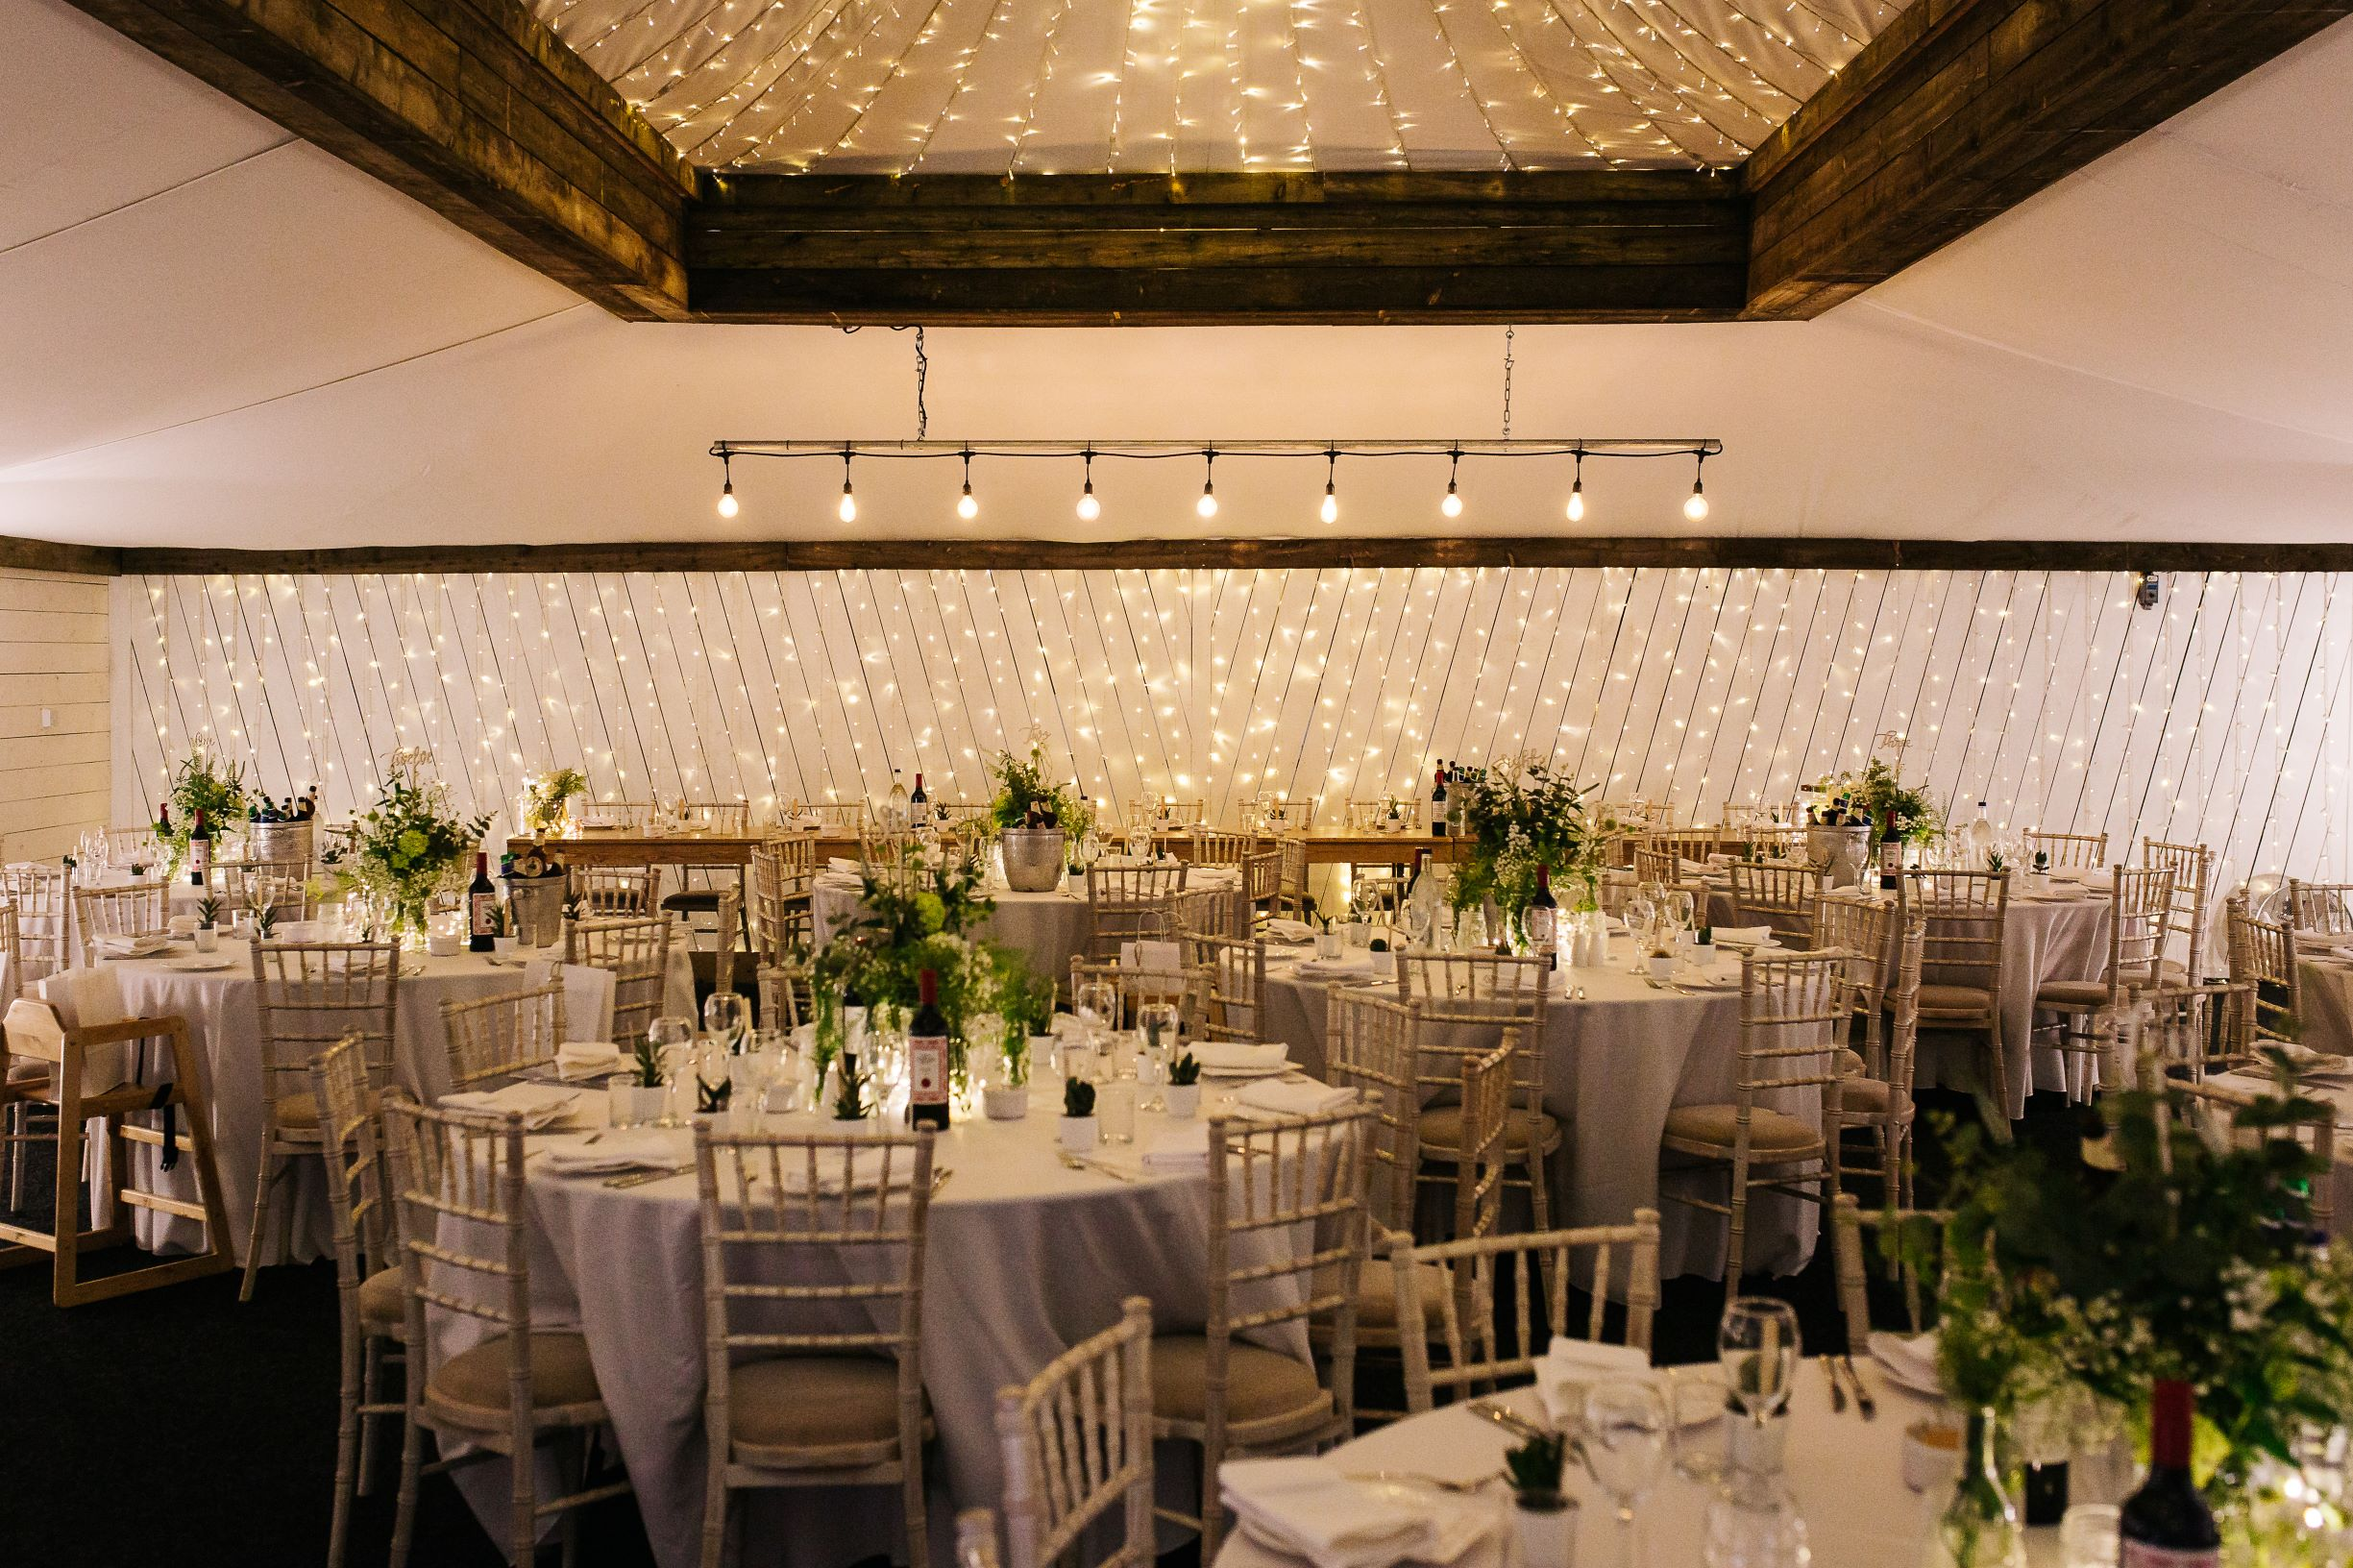 Grain Shed dining area ready for guests. Photo by pauljosephphotography.co.uk.jpg